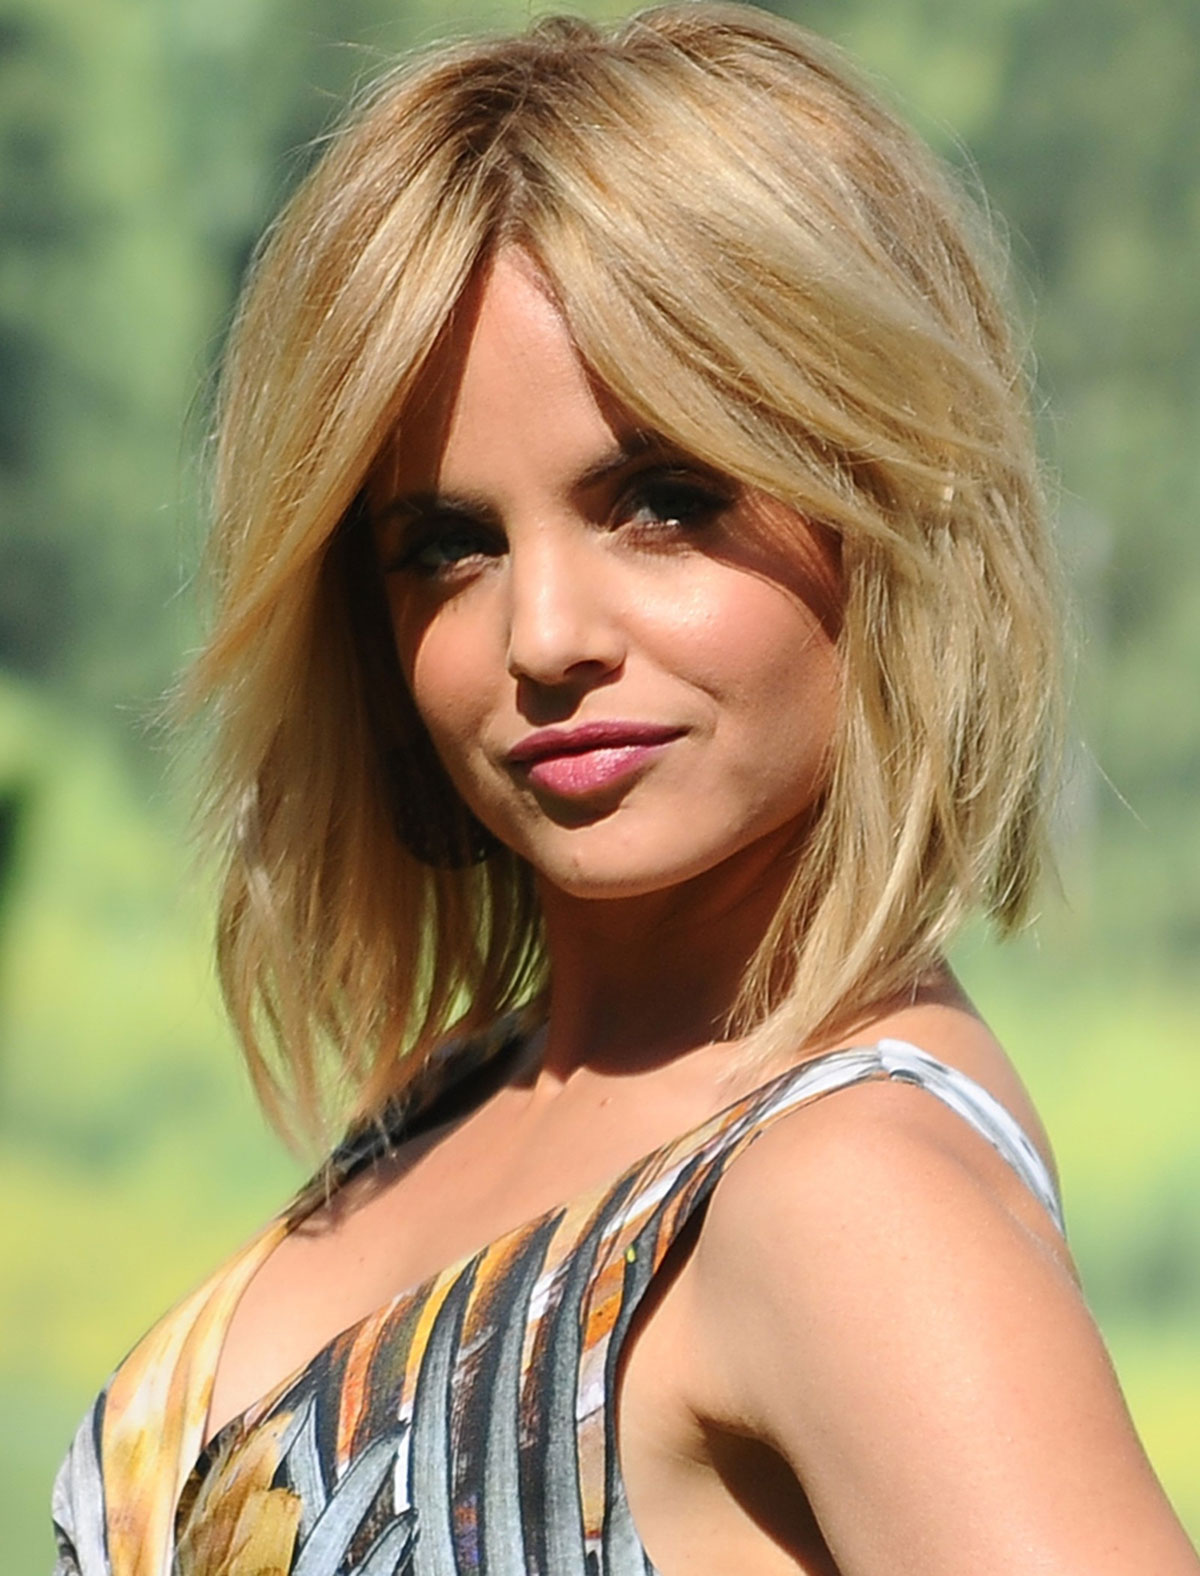 http://2.bp.blogspot.com/-As_vsP61FVI/T49brFuw08I/AAAAAAAAA-U/pFvjchljOIY/s1600/MENA-SUVARI-The-American-Reunion-Photocal-in-Rome-05.jpg